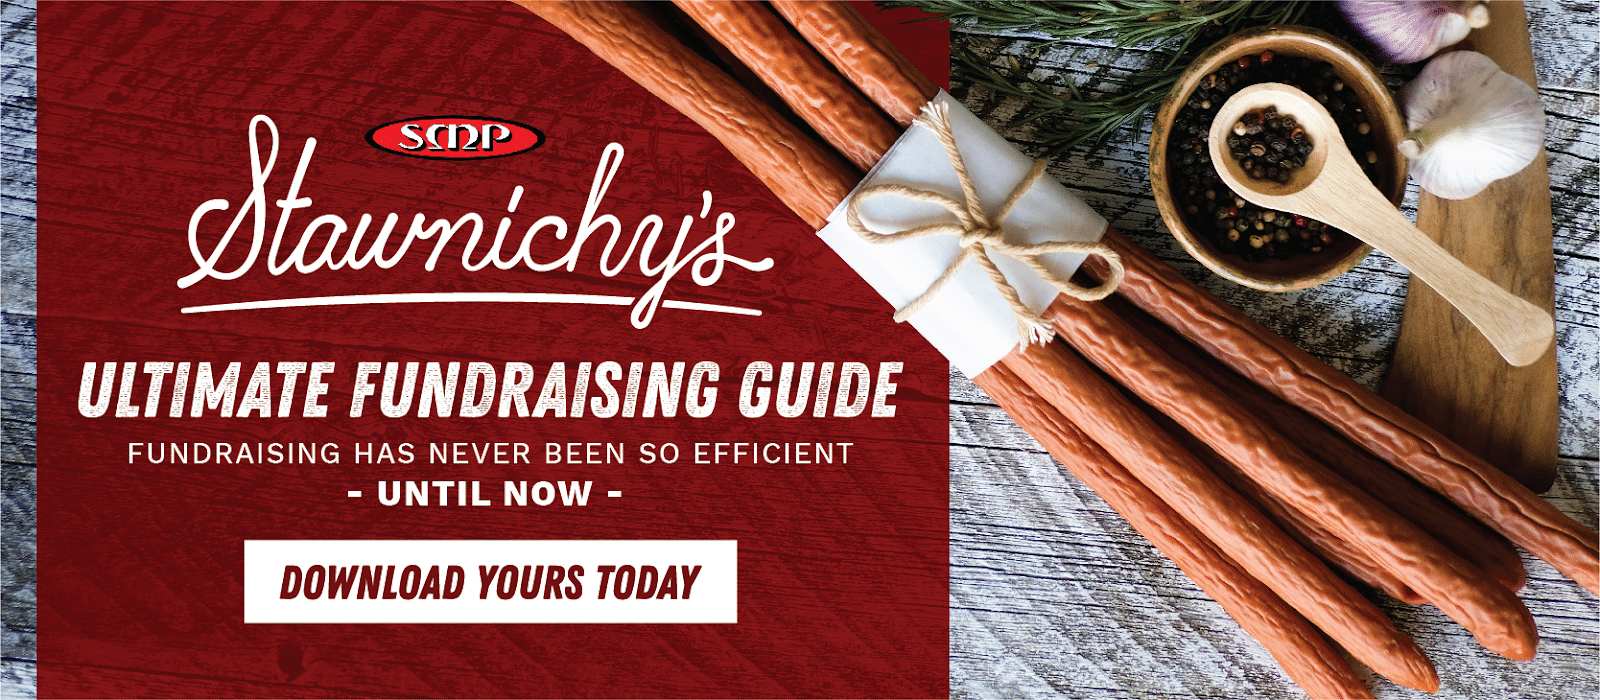 Ultimate Fundraising Guide | Stawnichy's